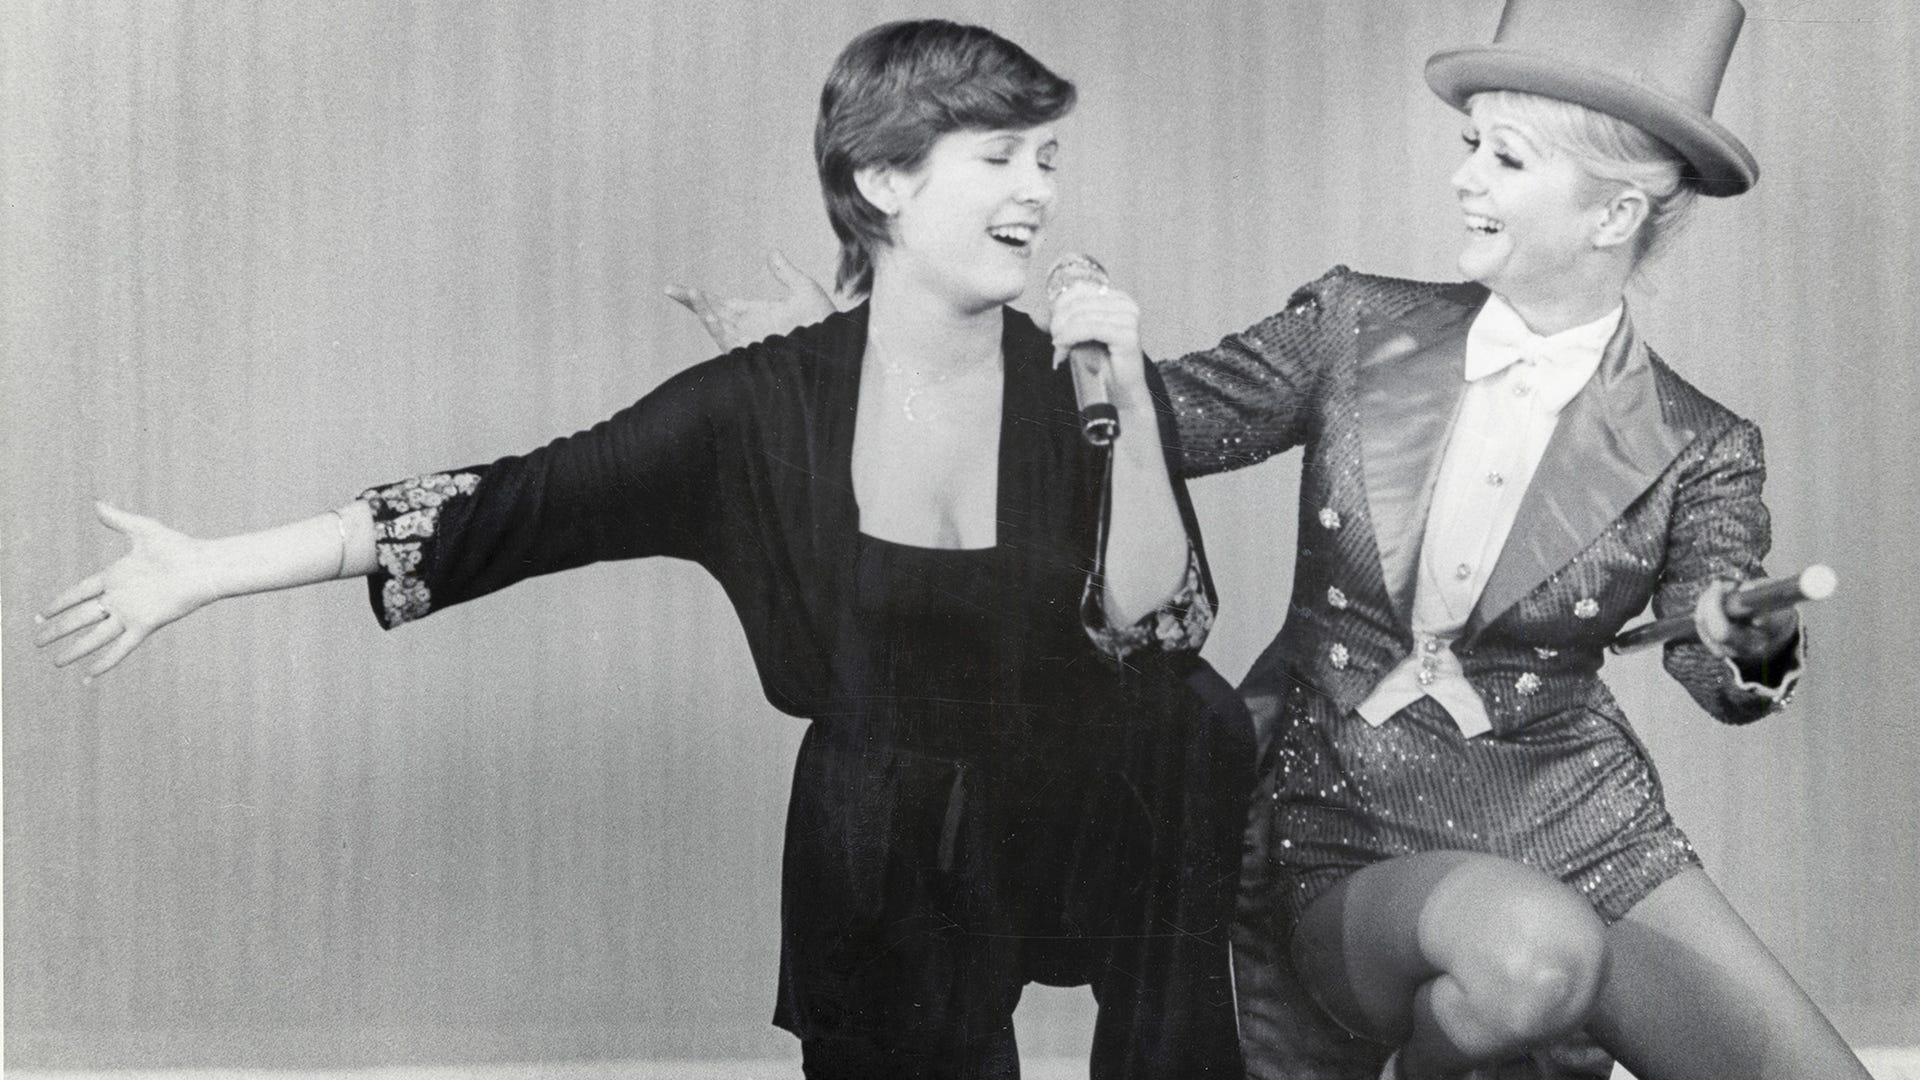 Debbie Reynolds and Carrie Fisher, Bright Lights: Starring Carrie Fisher and Debbie Reynolds